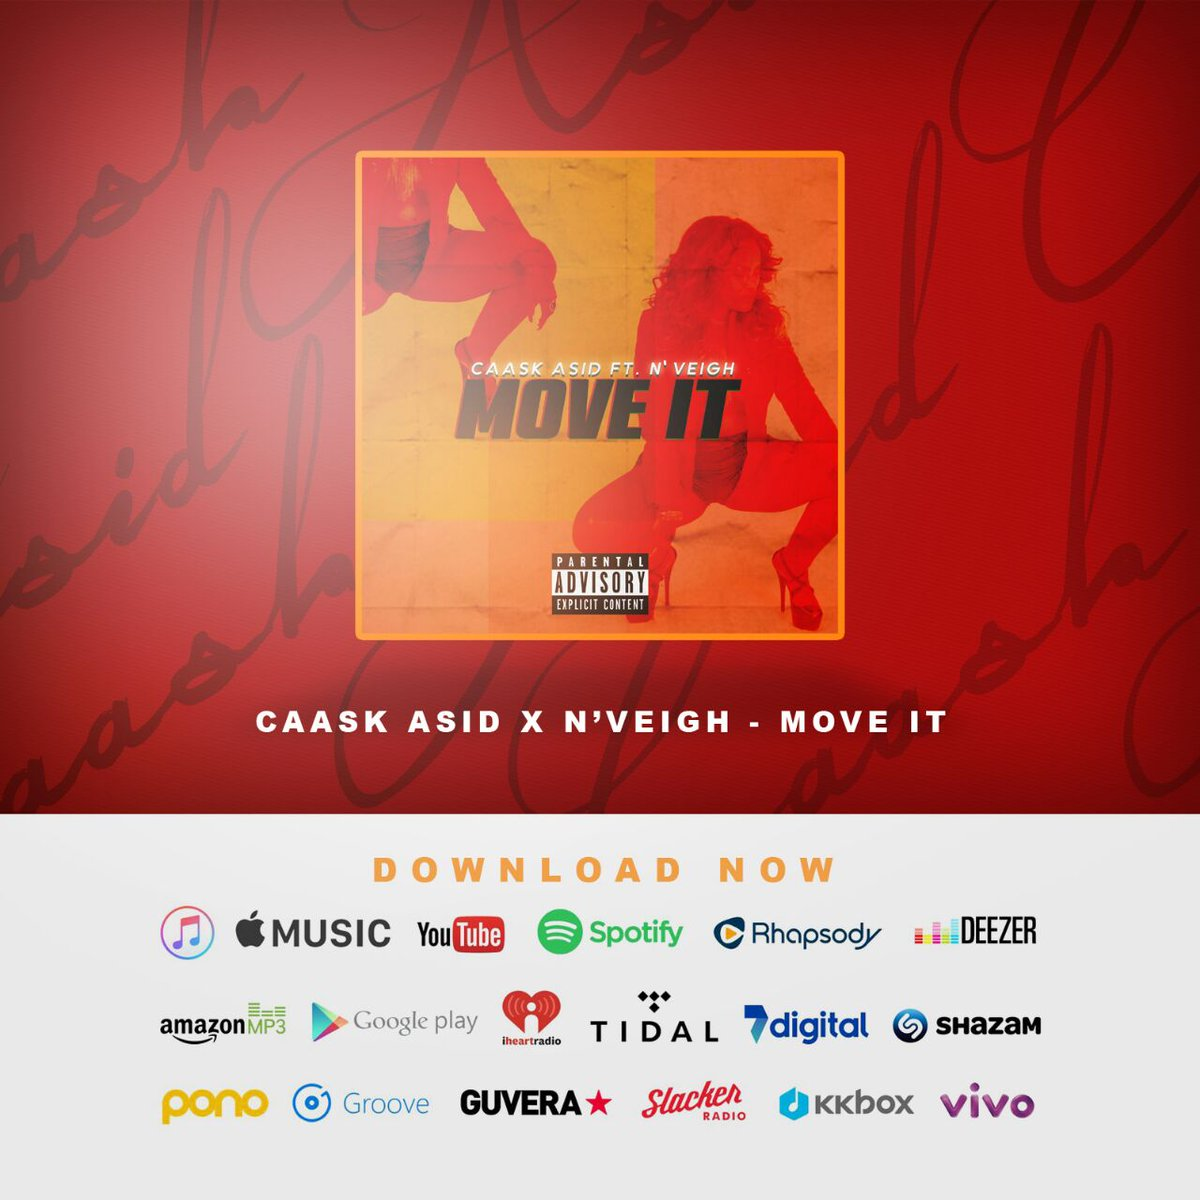 Download @CAASK_ASID Ft. N'Veigh -Move it   AudioMack- https://t.co/Df8E7DZZDR  SoundCloud - https://t.co/L7Dc4Ophb6 https://t.co/lhxcZdXKLt